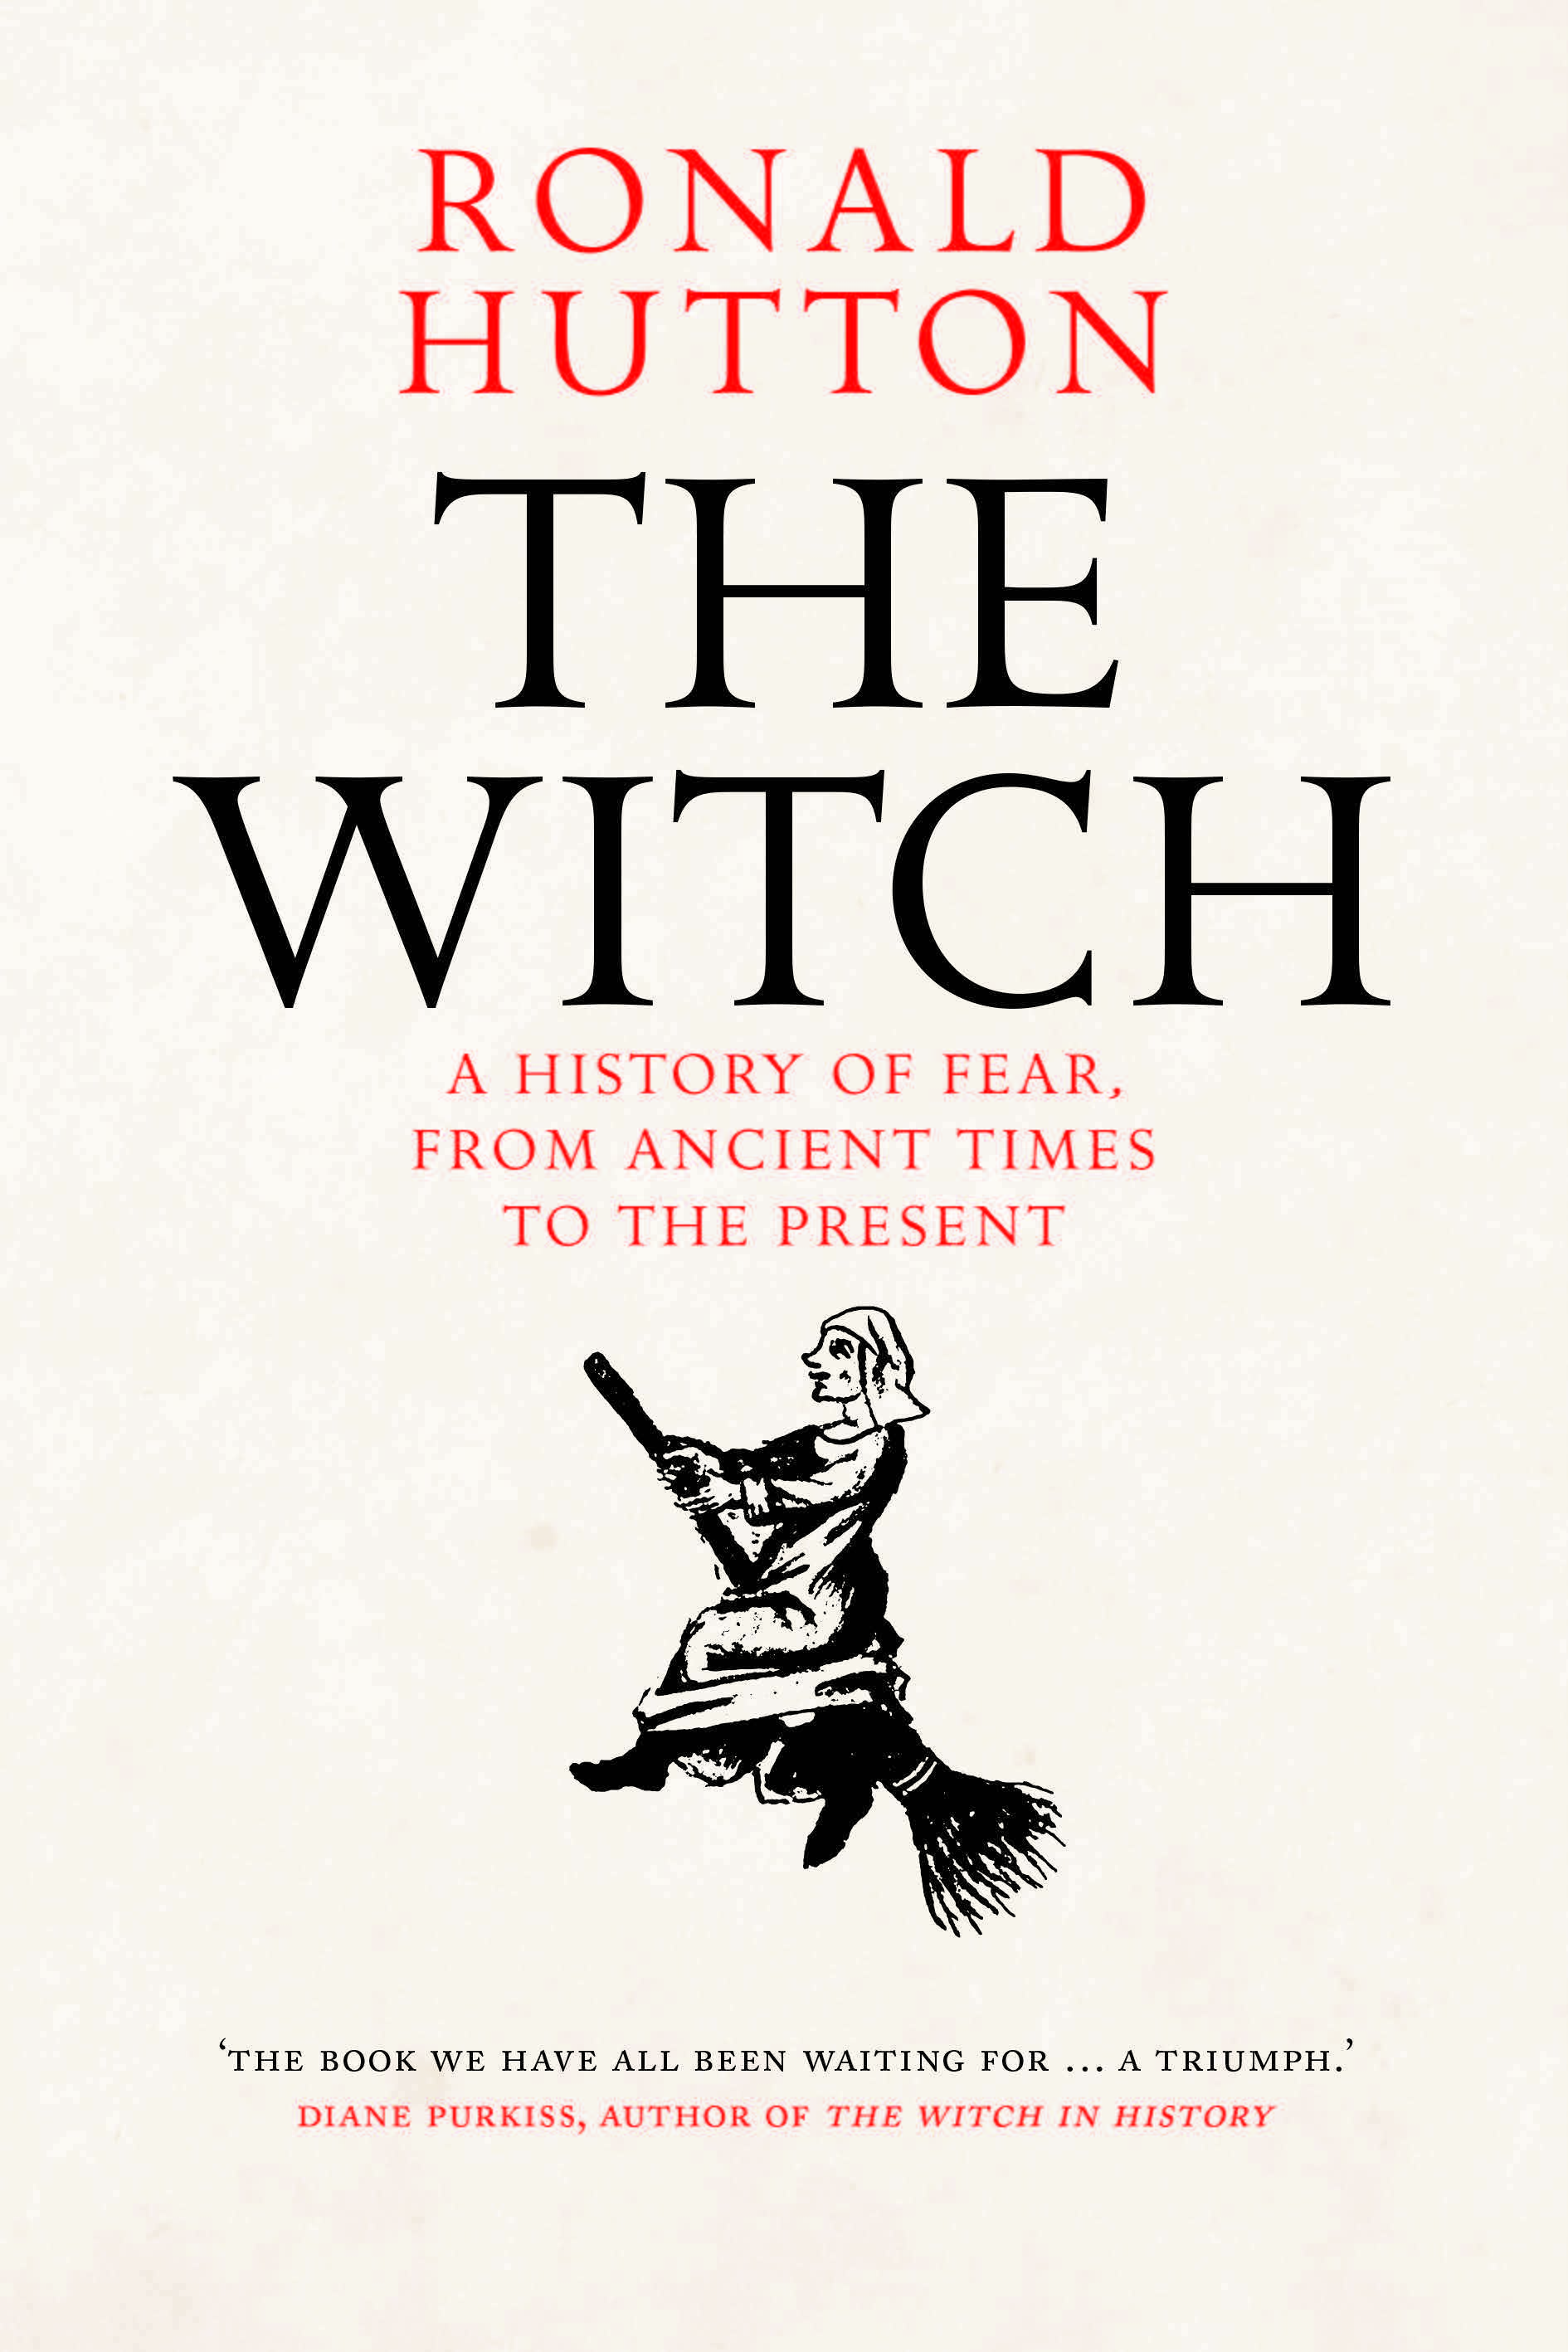 What sparked our fear of witches — and what kept it burning